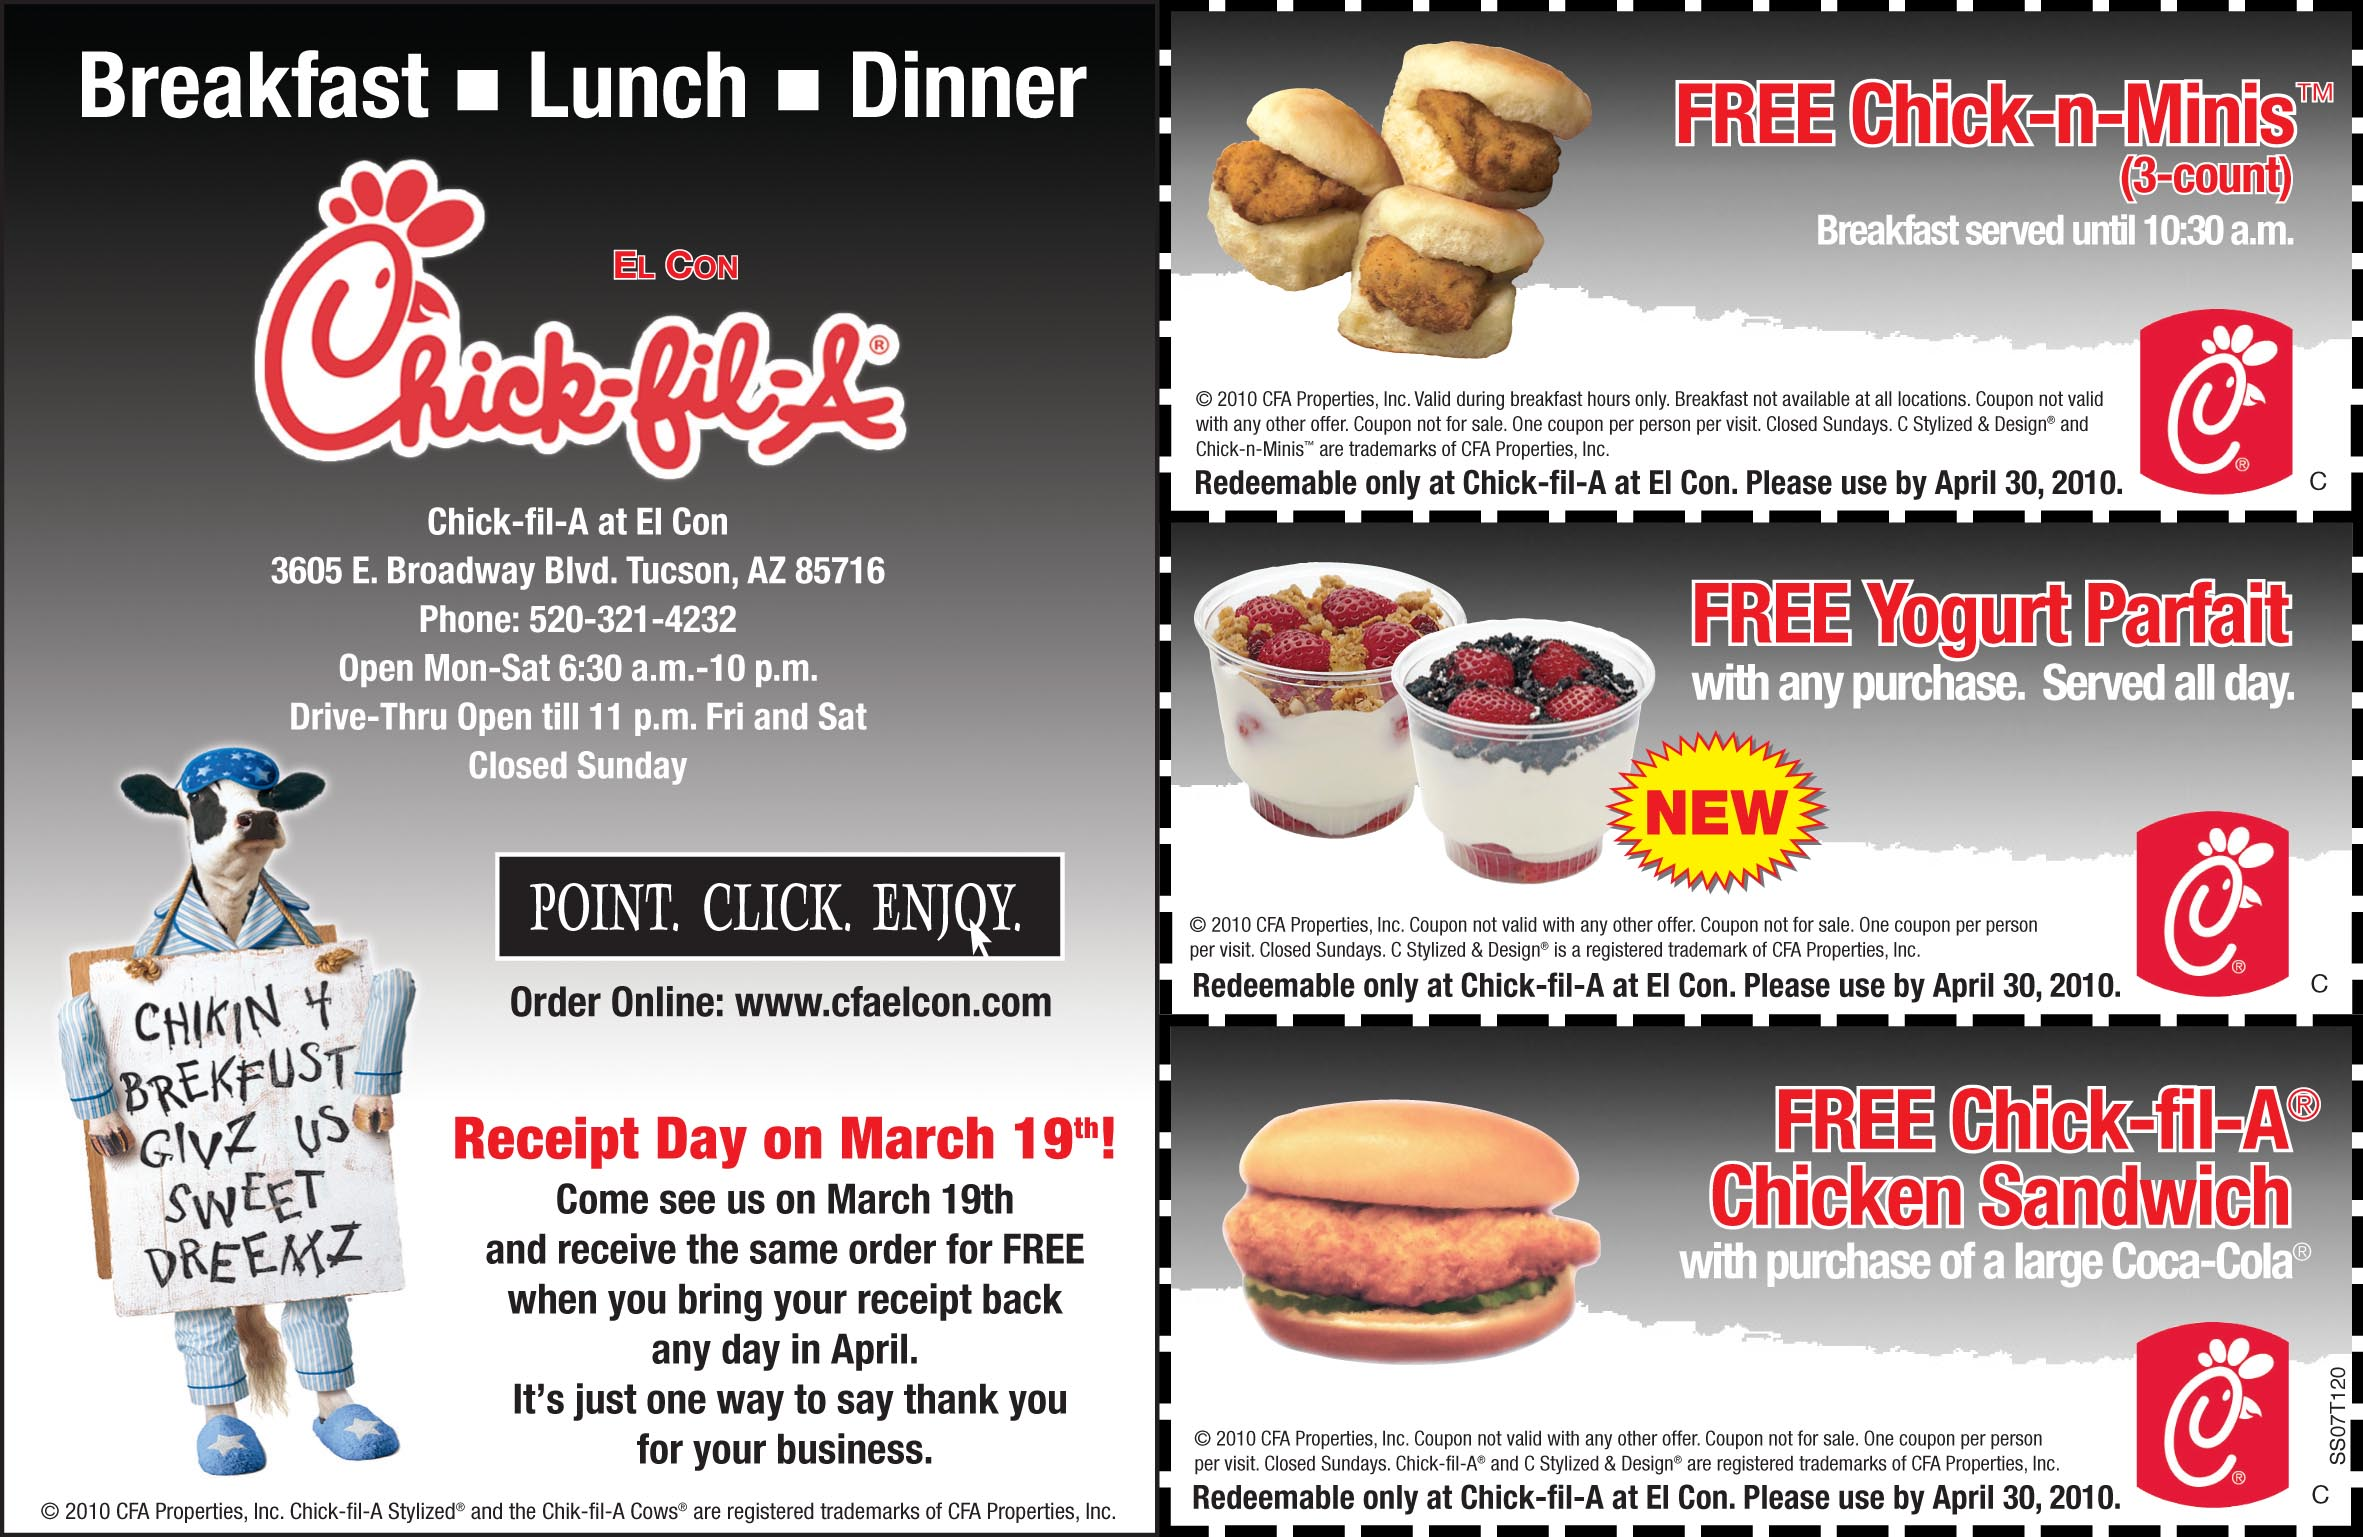 Chick fil a coupon code